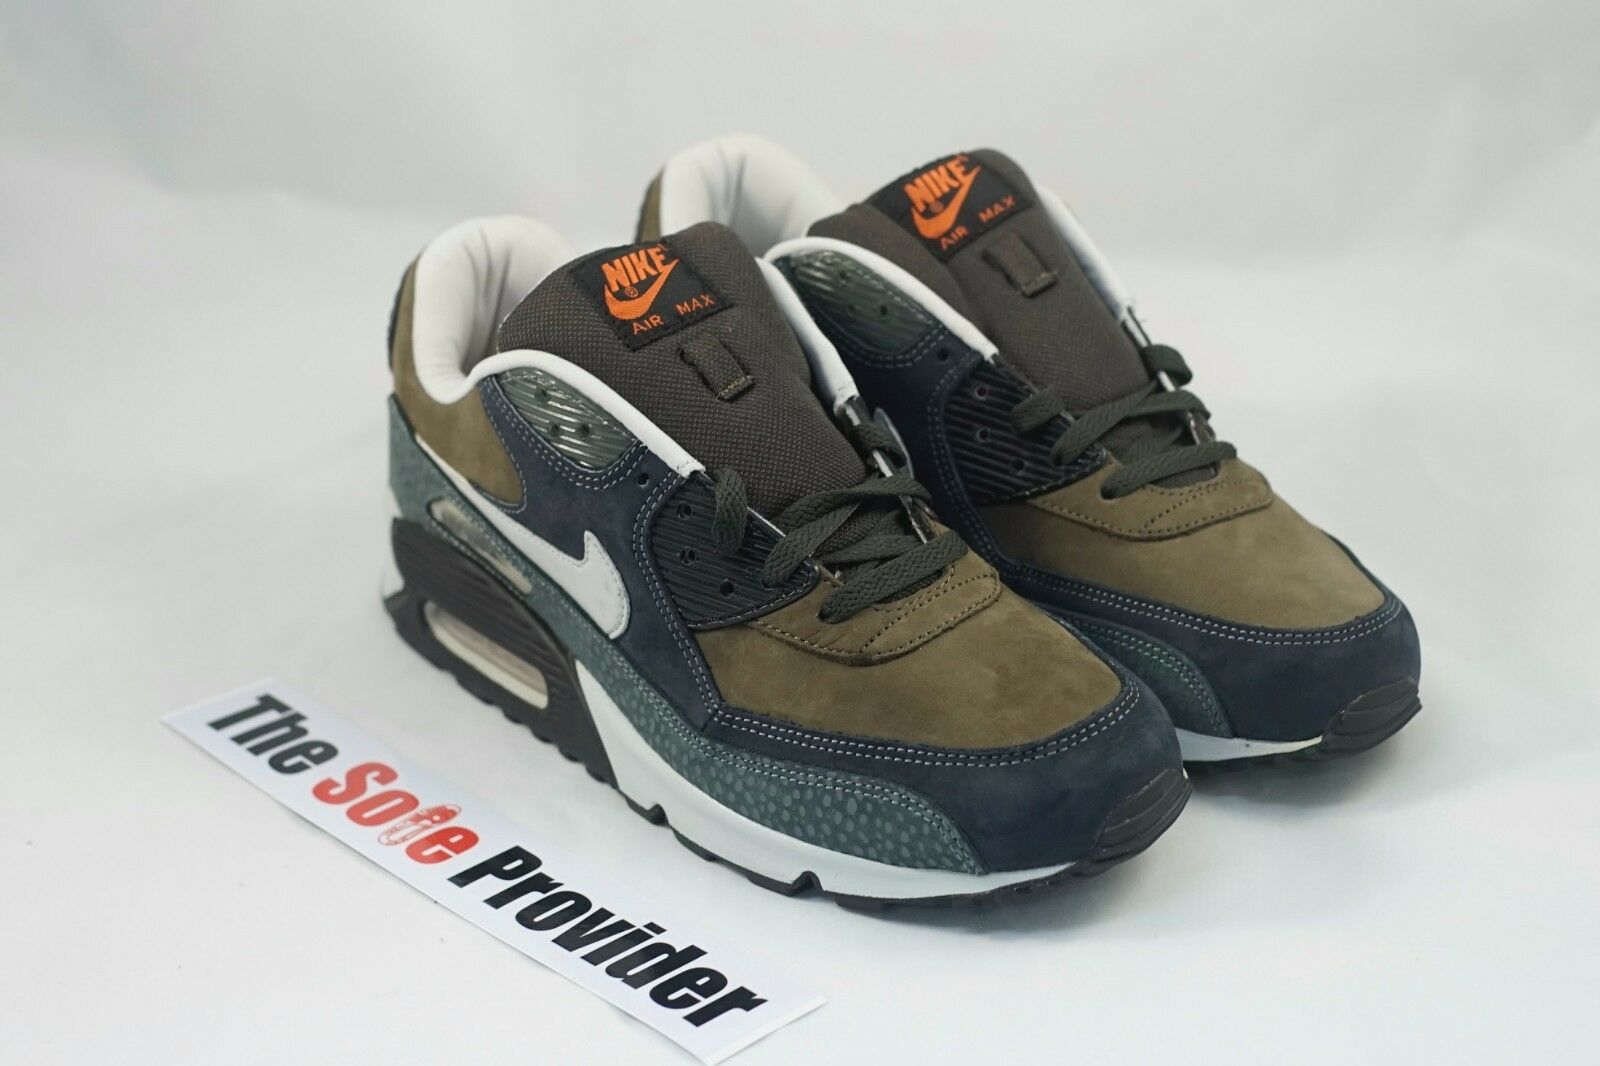 AIR MAX 90 PREMIUM SAFARI AM90 VINTAGE DS BNIB SZ 11 2018